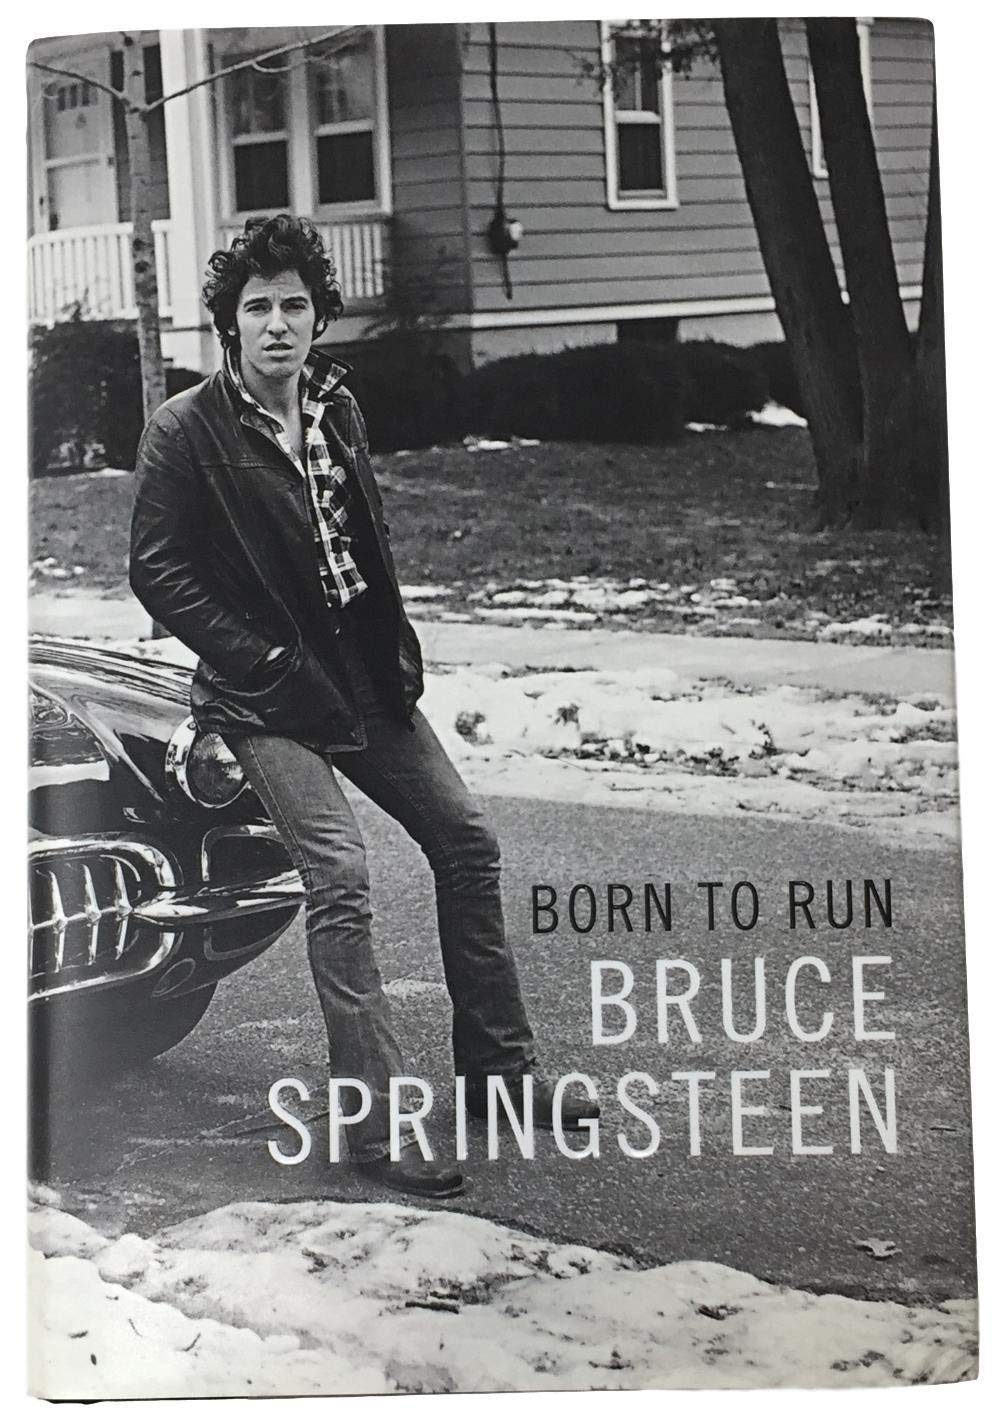 Bruce Springsteen Autographed Signed Born To Run Hardcover Book PSA/DNA Authentic